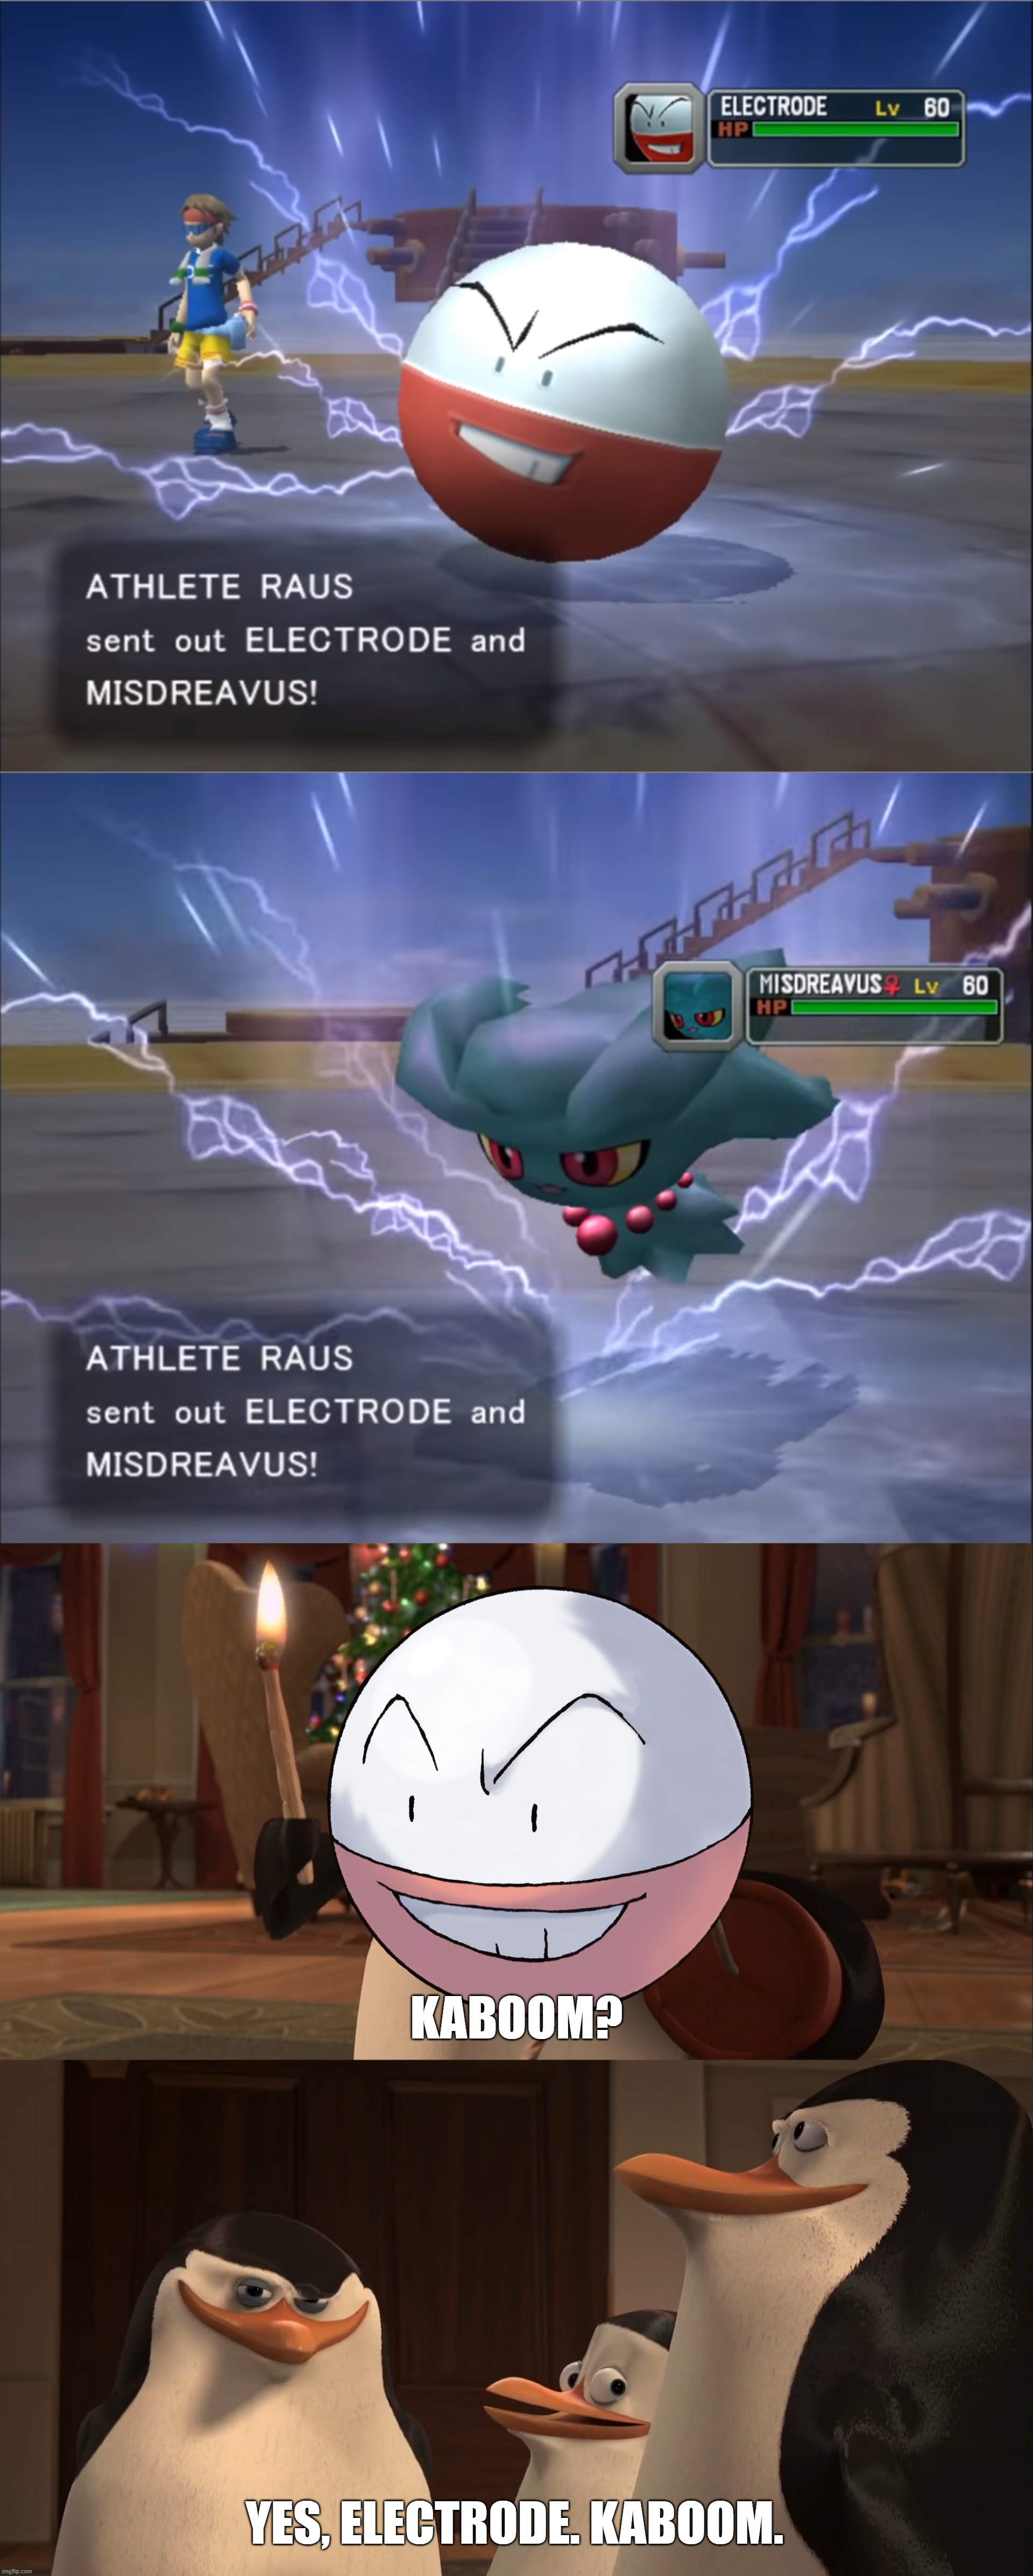 KABOOM? YES, ELECTRODE. KABOOM. | image tagged in madagascar penguin kaboom | made w/ Imgflip meme maker